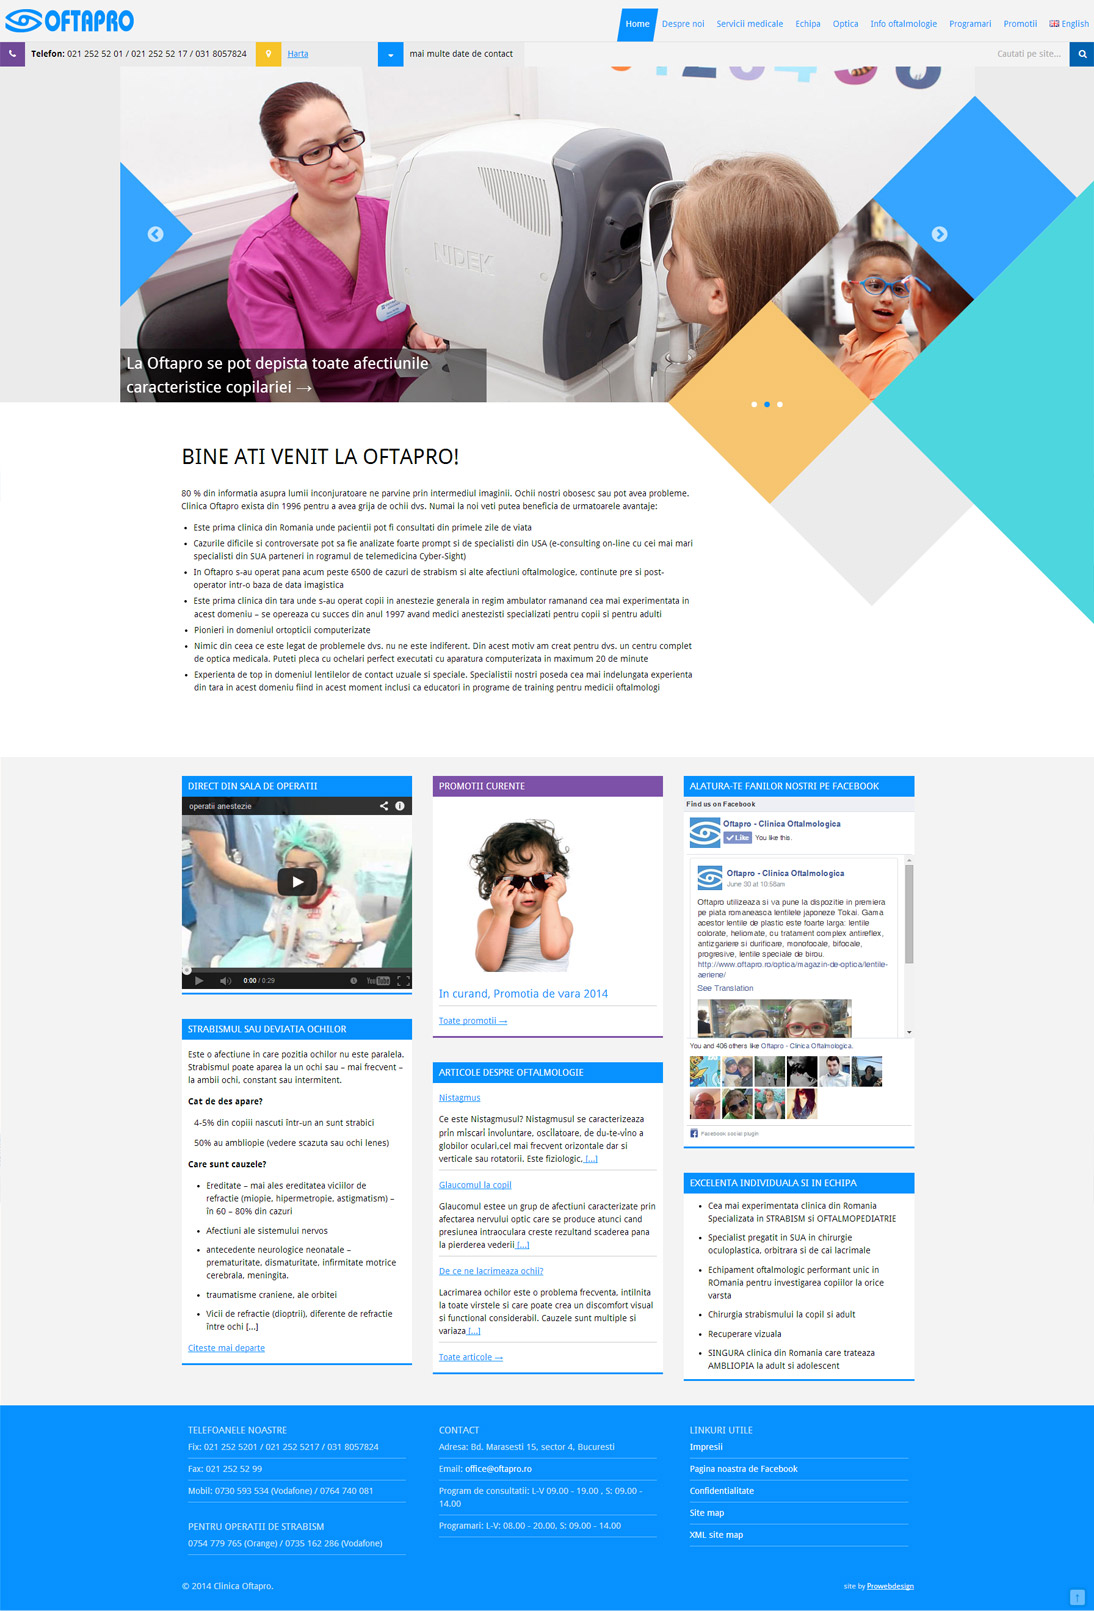 Full length Home page screenshot of Oftapro site